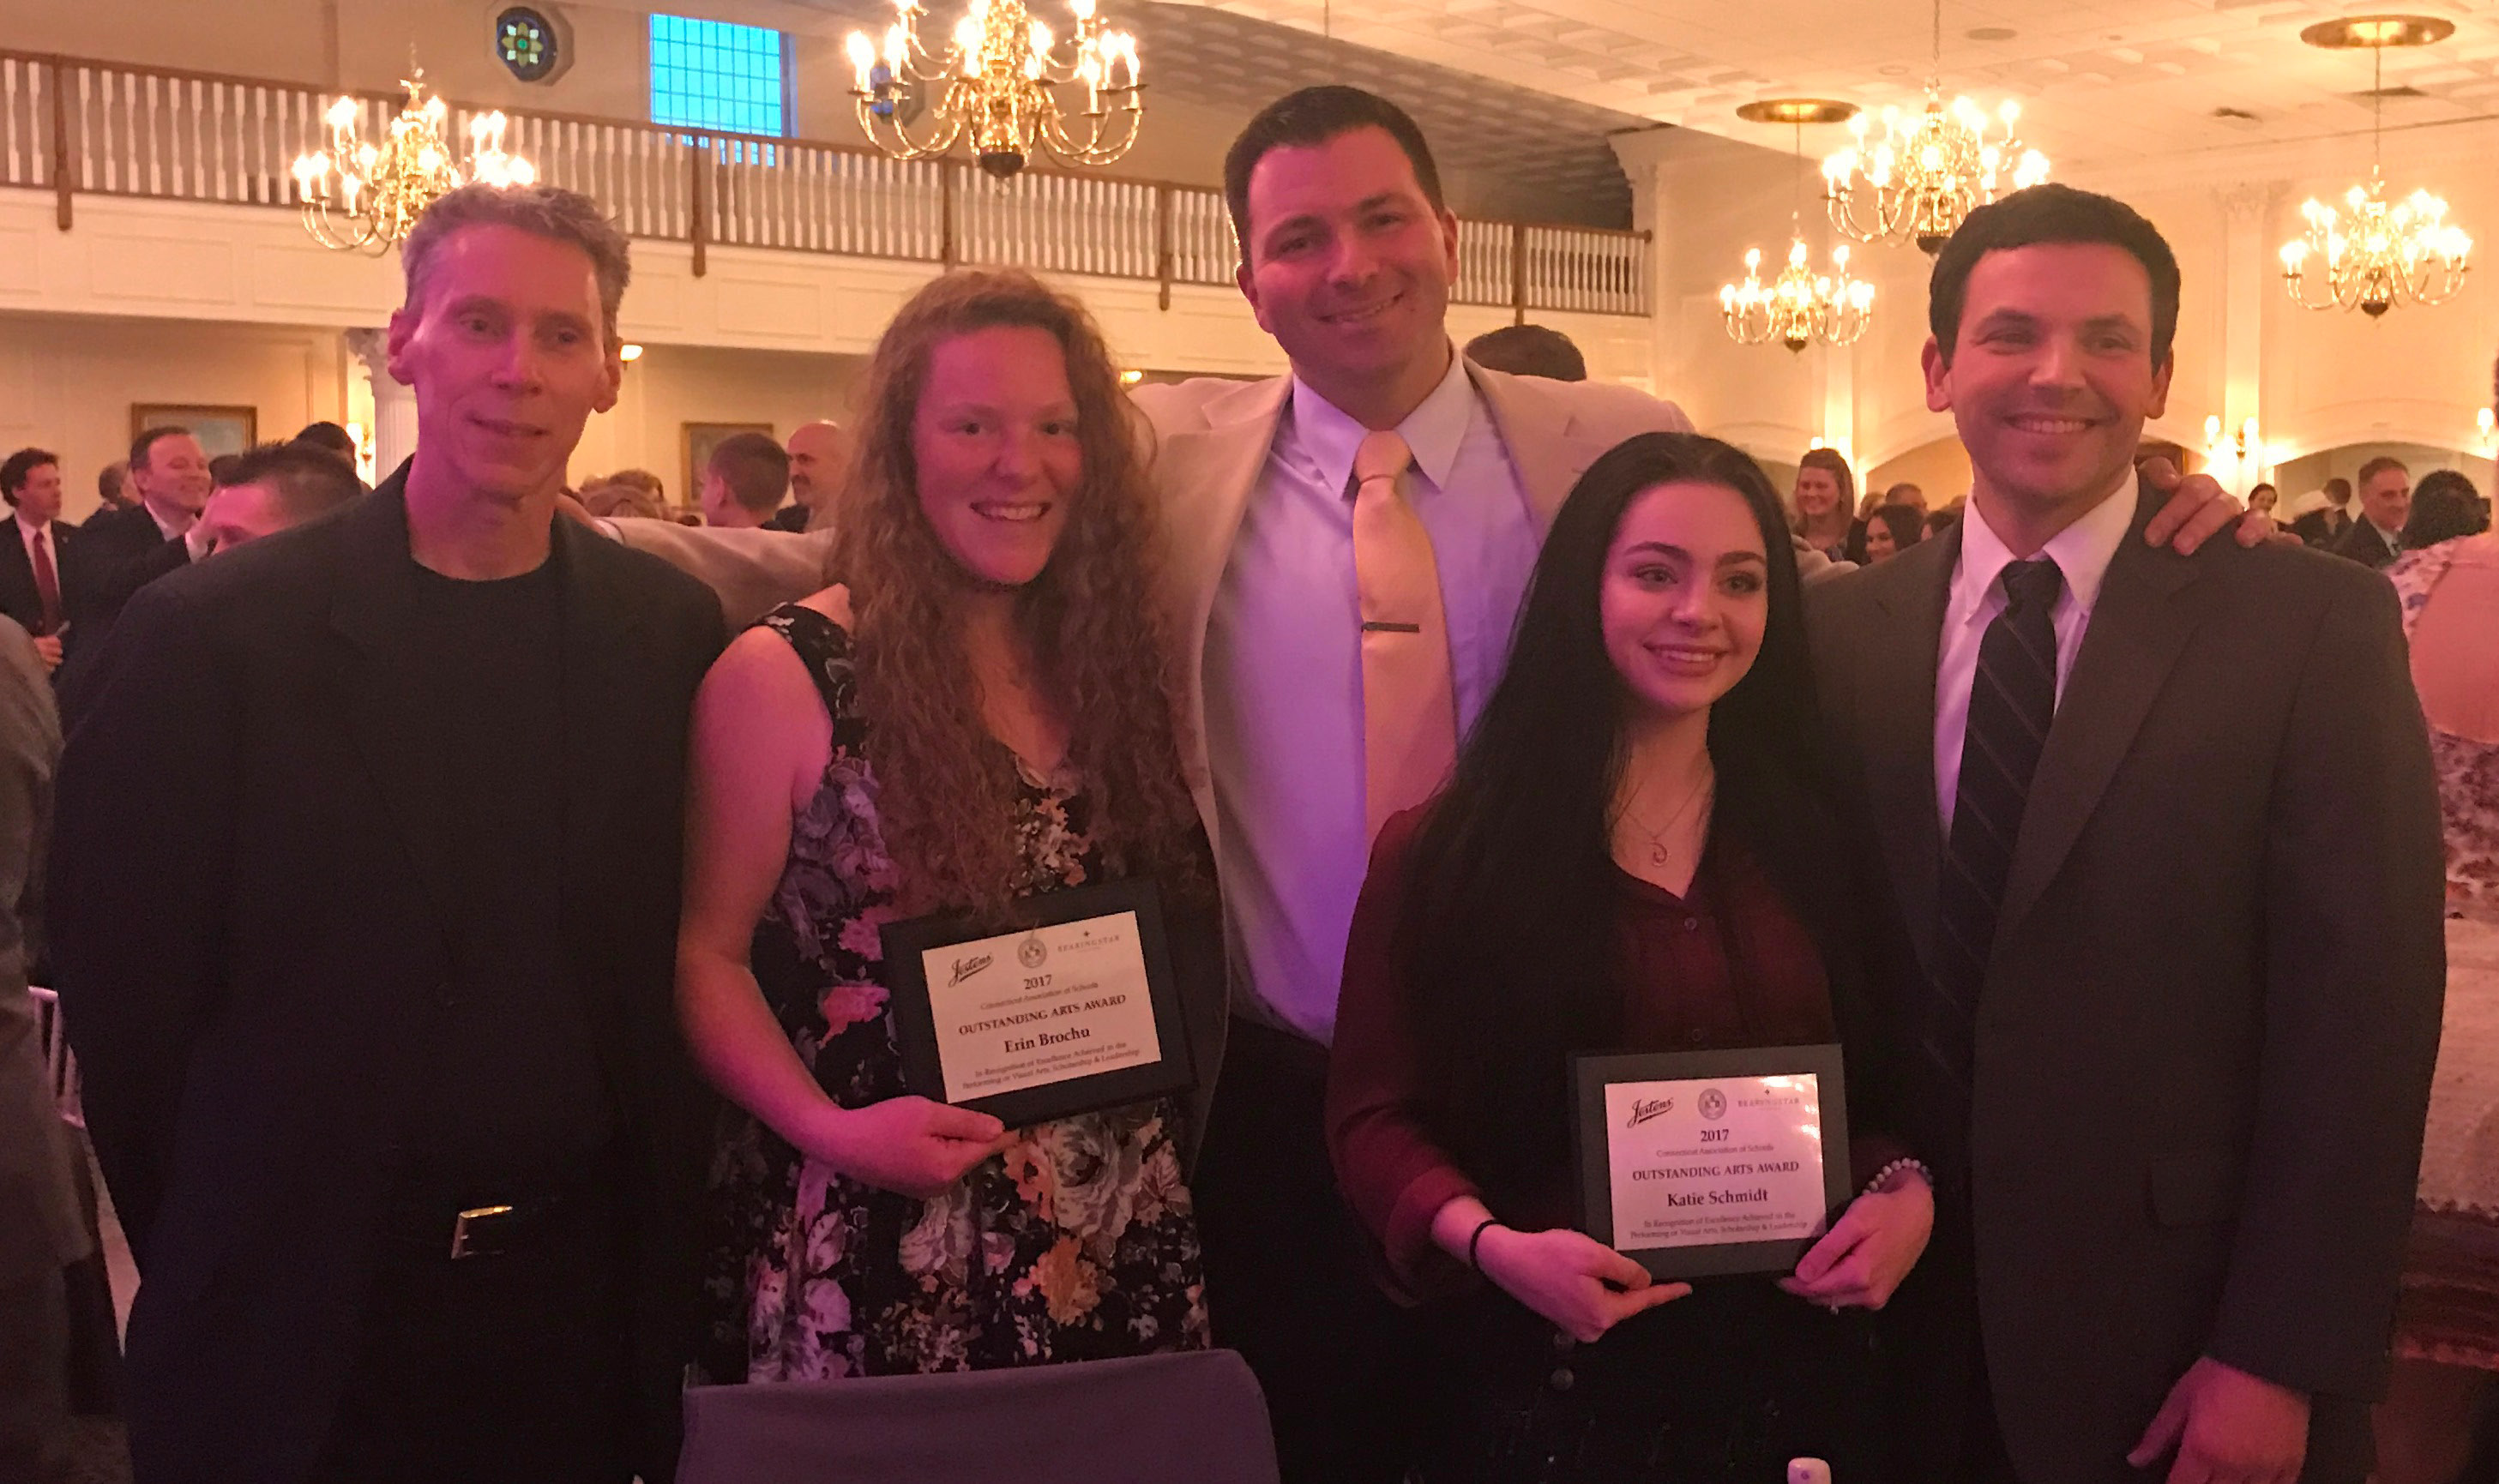 From left: Plainville High School music instructor Jeff Blanchette, Erin Brochu, Plainville High School Principal Roberto Medic, Katie Schmidt and Plainville High School Art Instructor Mario Pires.